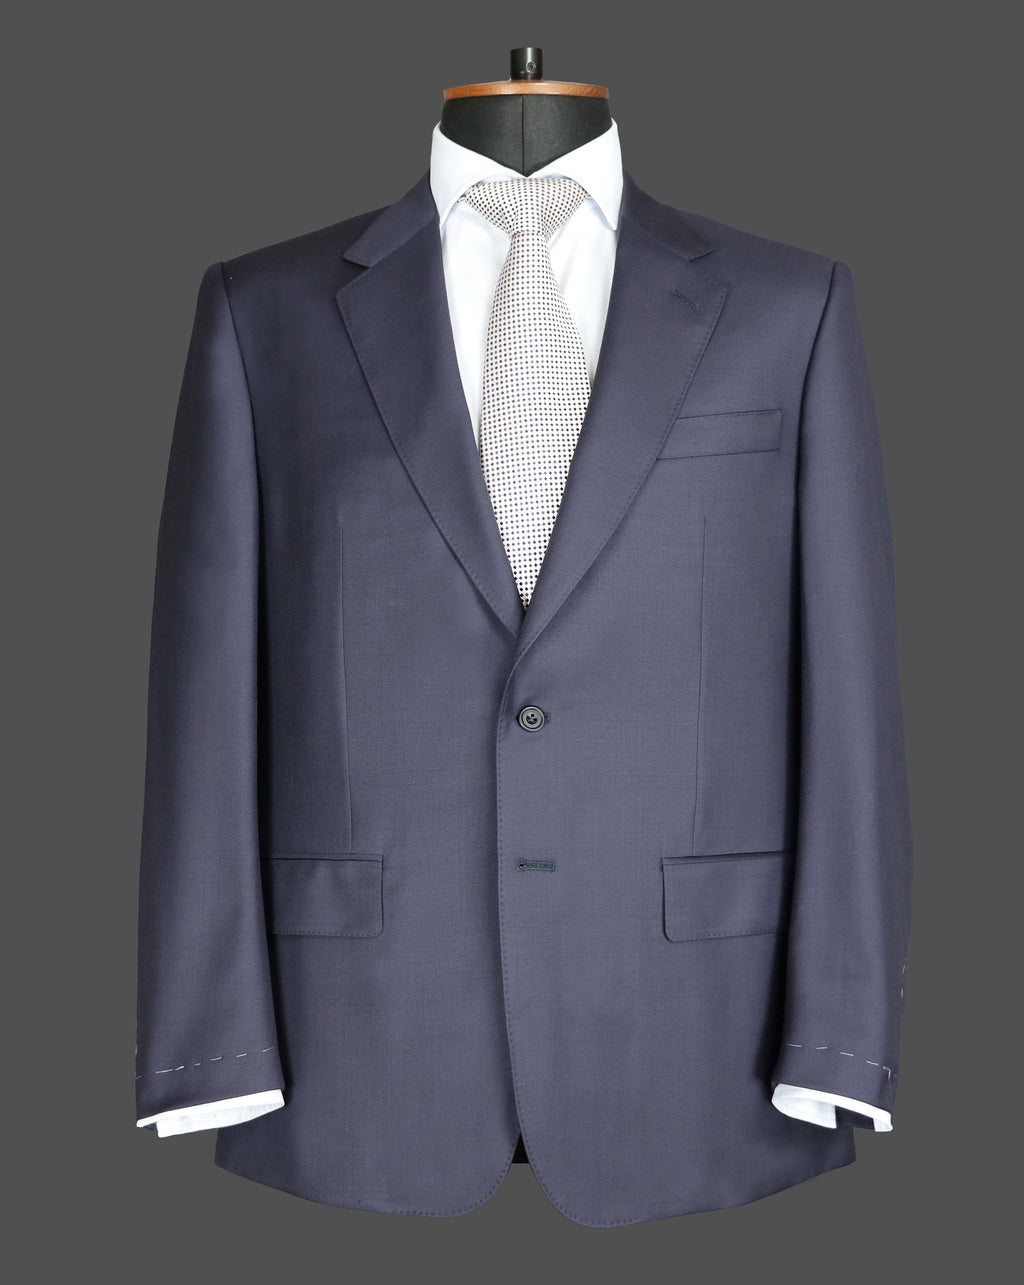 TLA066 - Plain Navy Suit